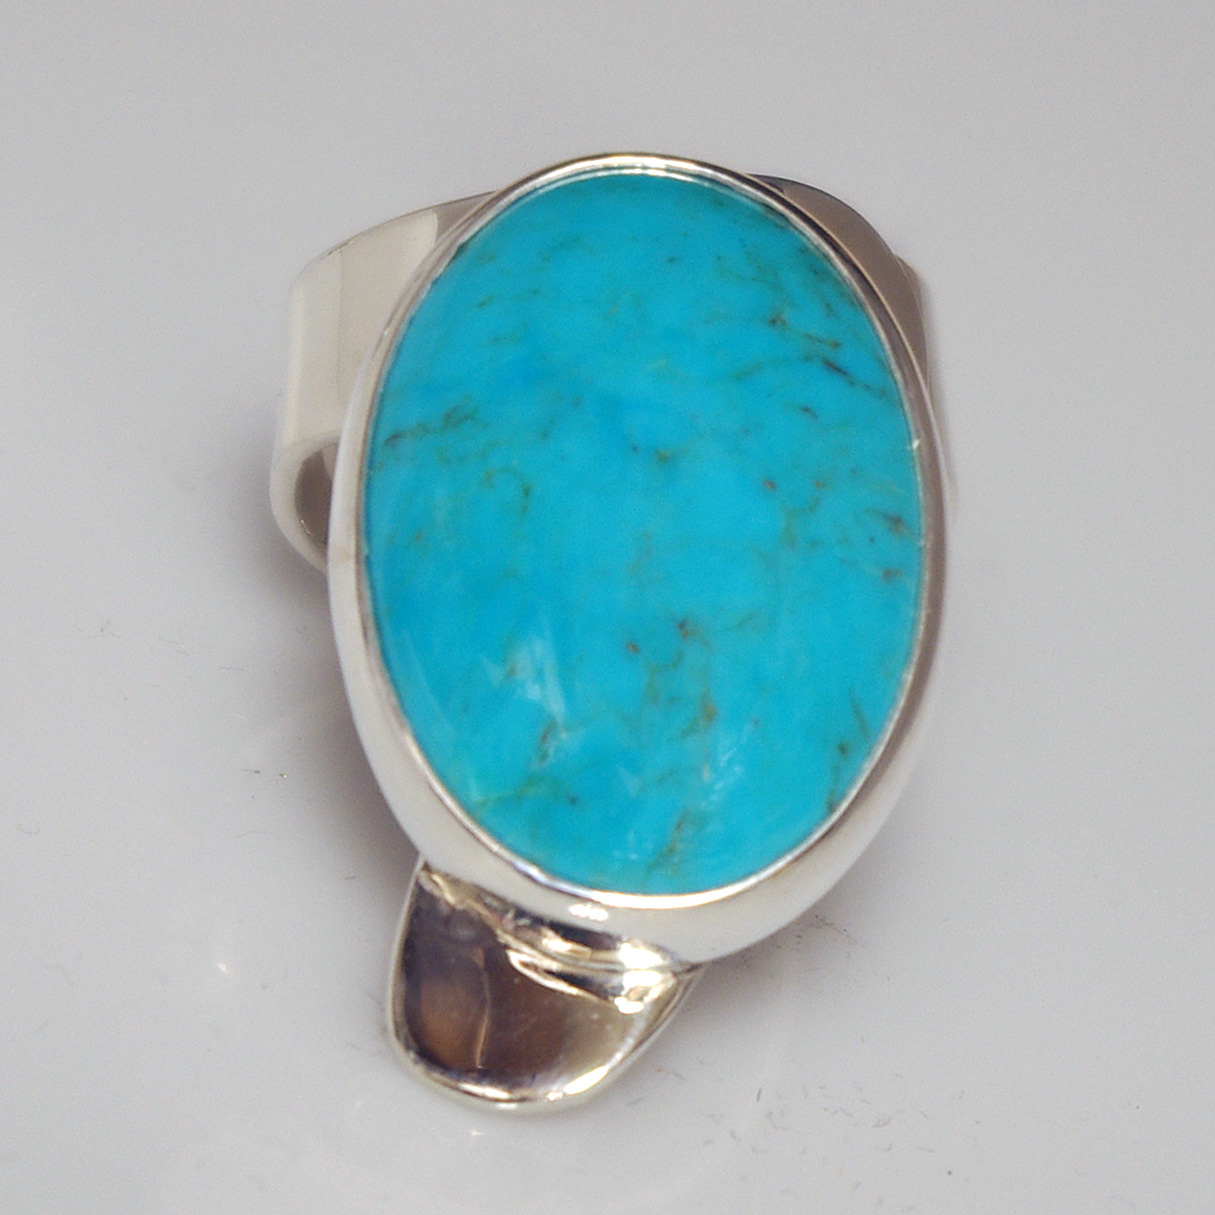 Oval Turquoise Modernist Ring